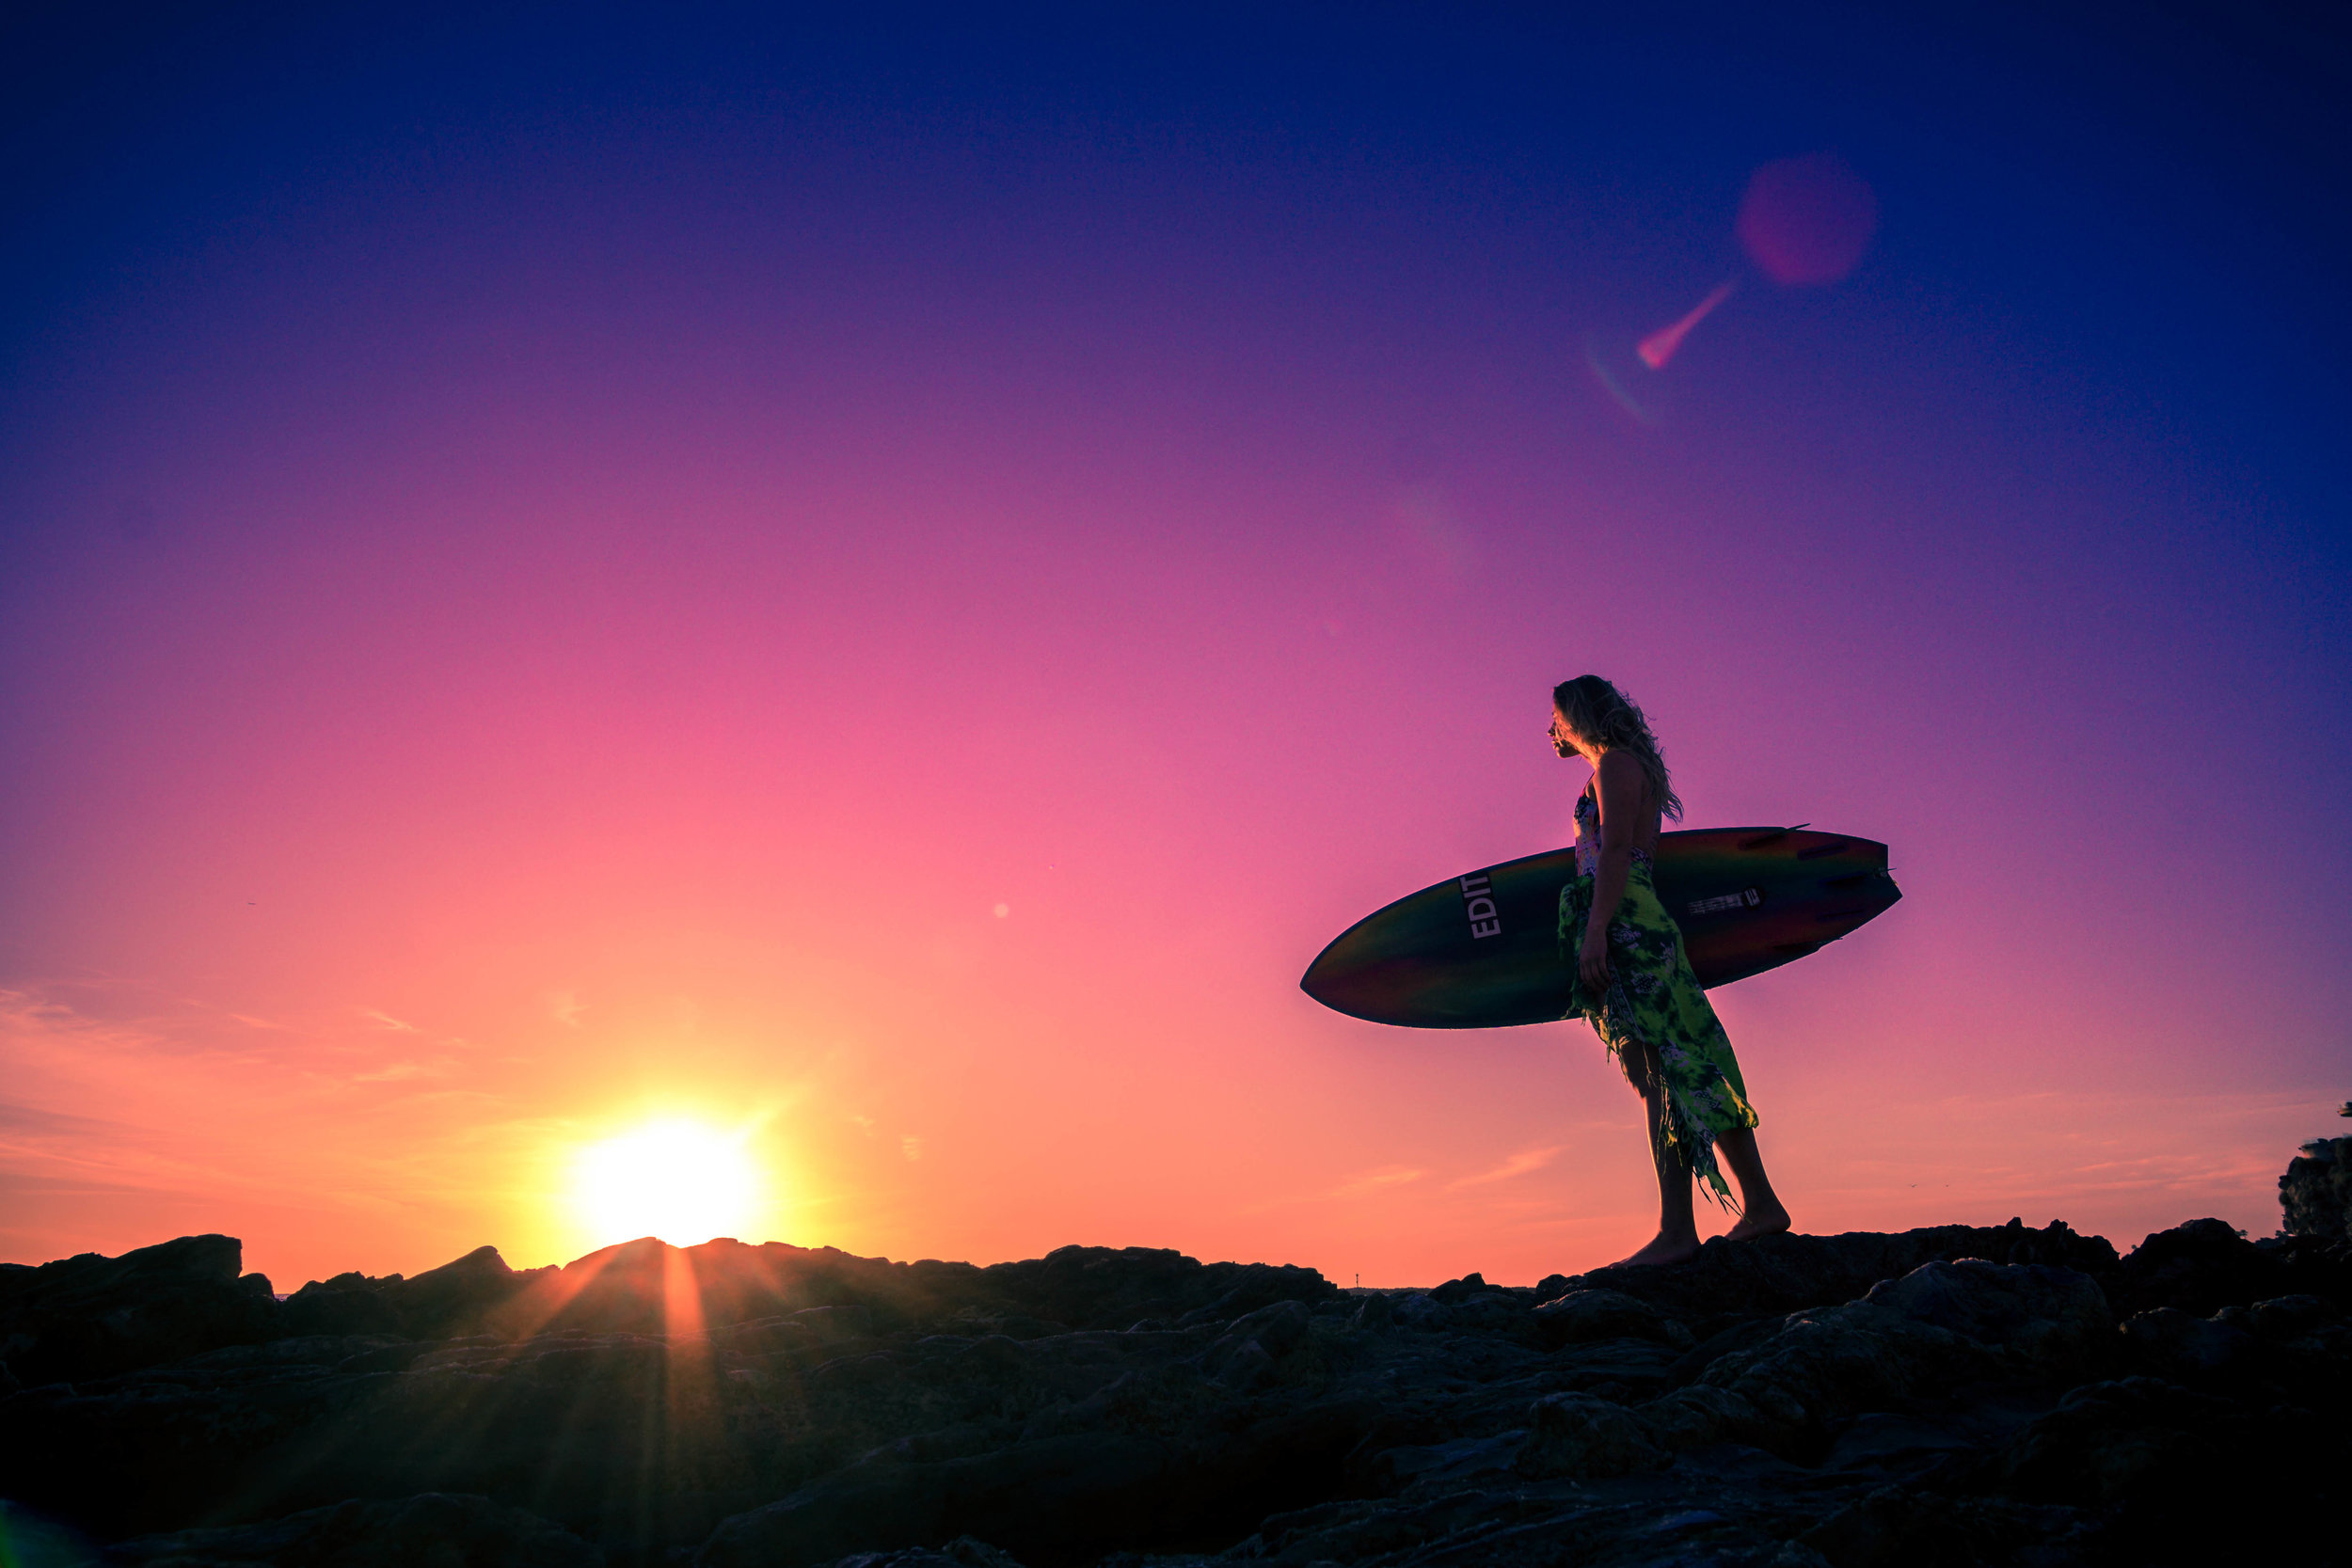 a silhouette of a surfer girl holding her surfboard on the rocks at corona Del mar beach at sunset